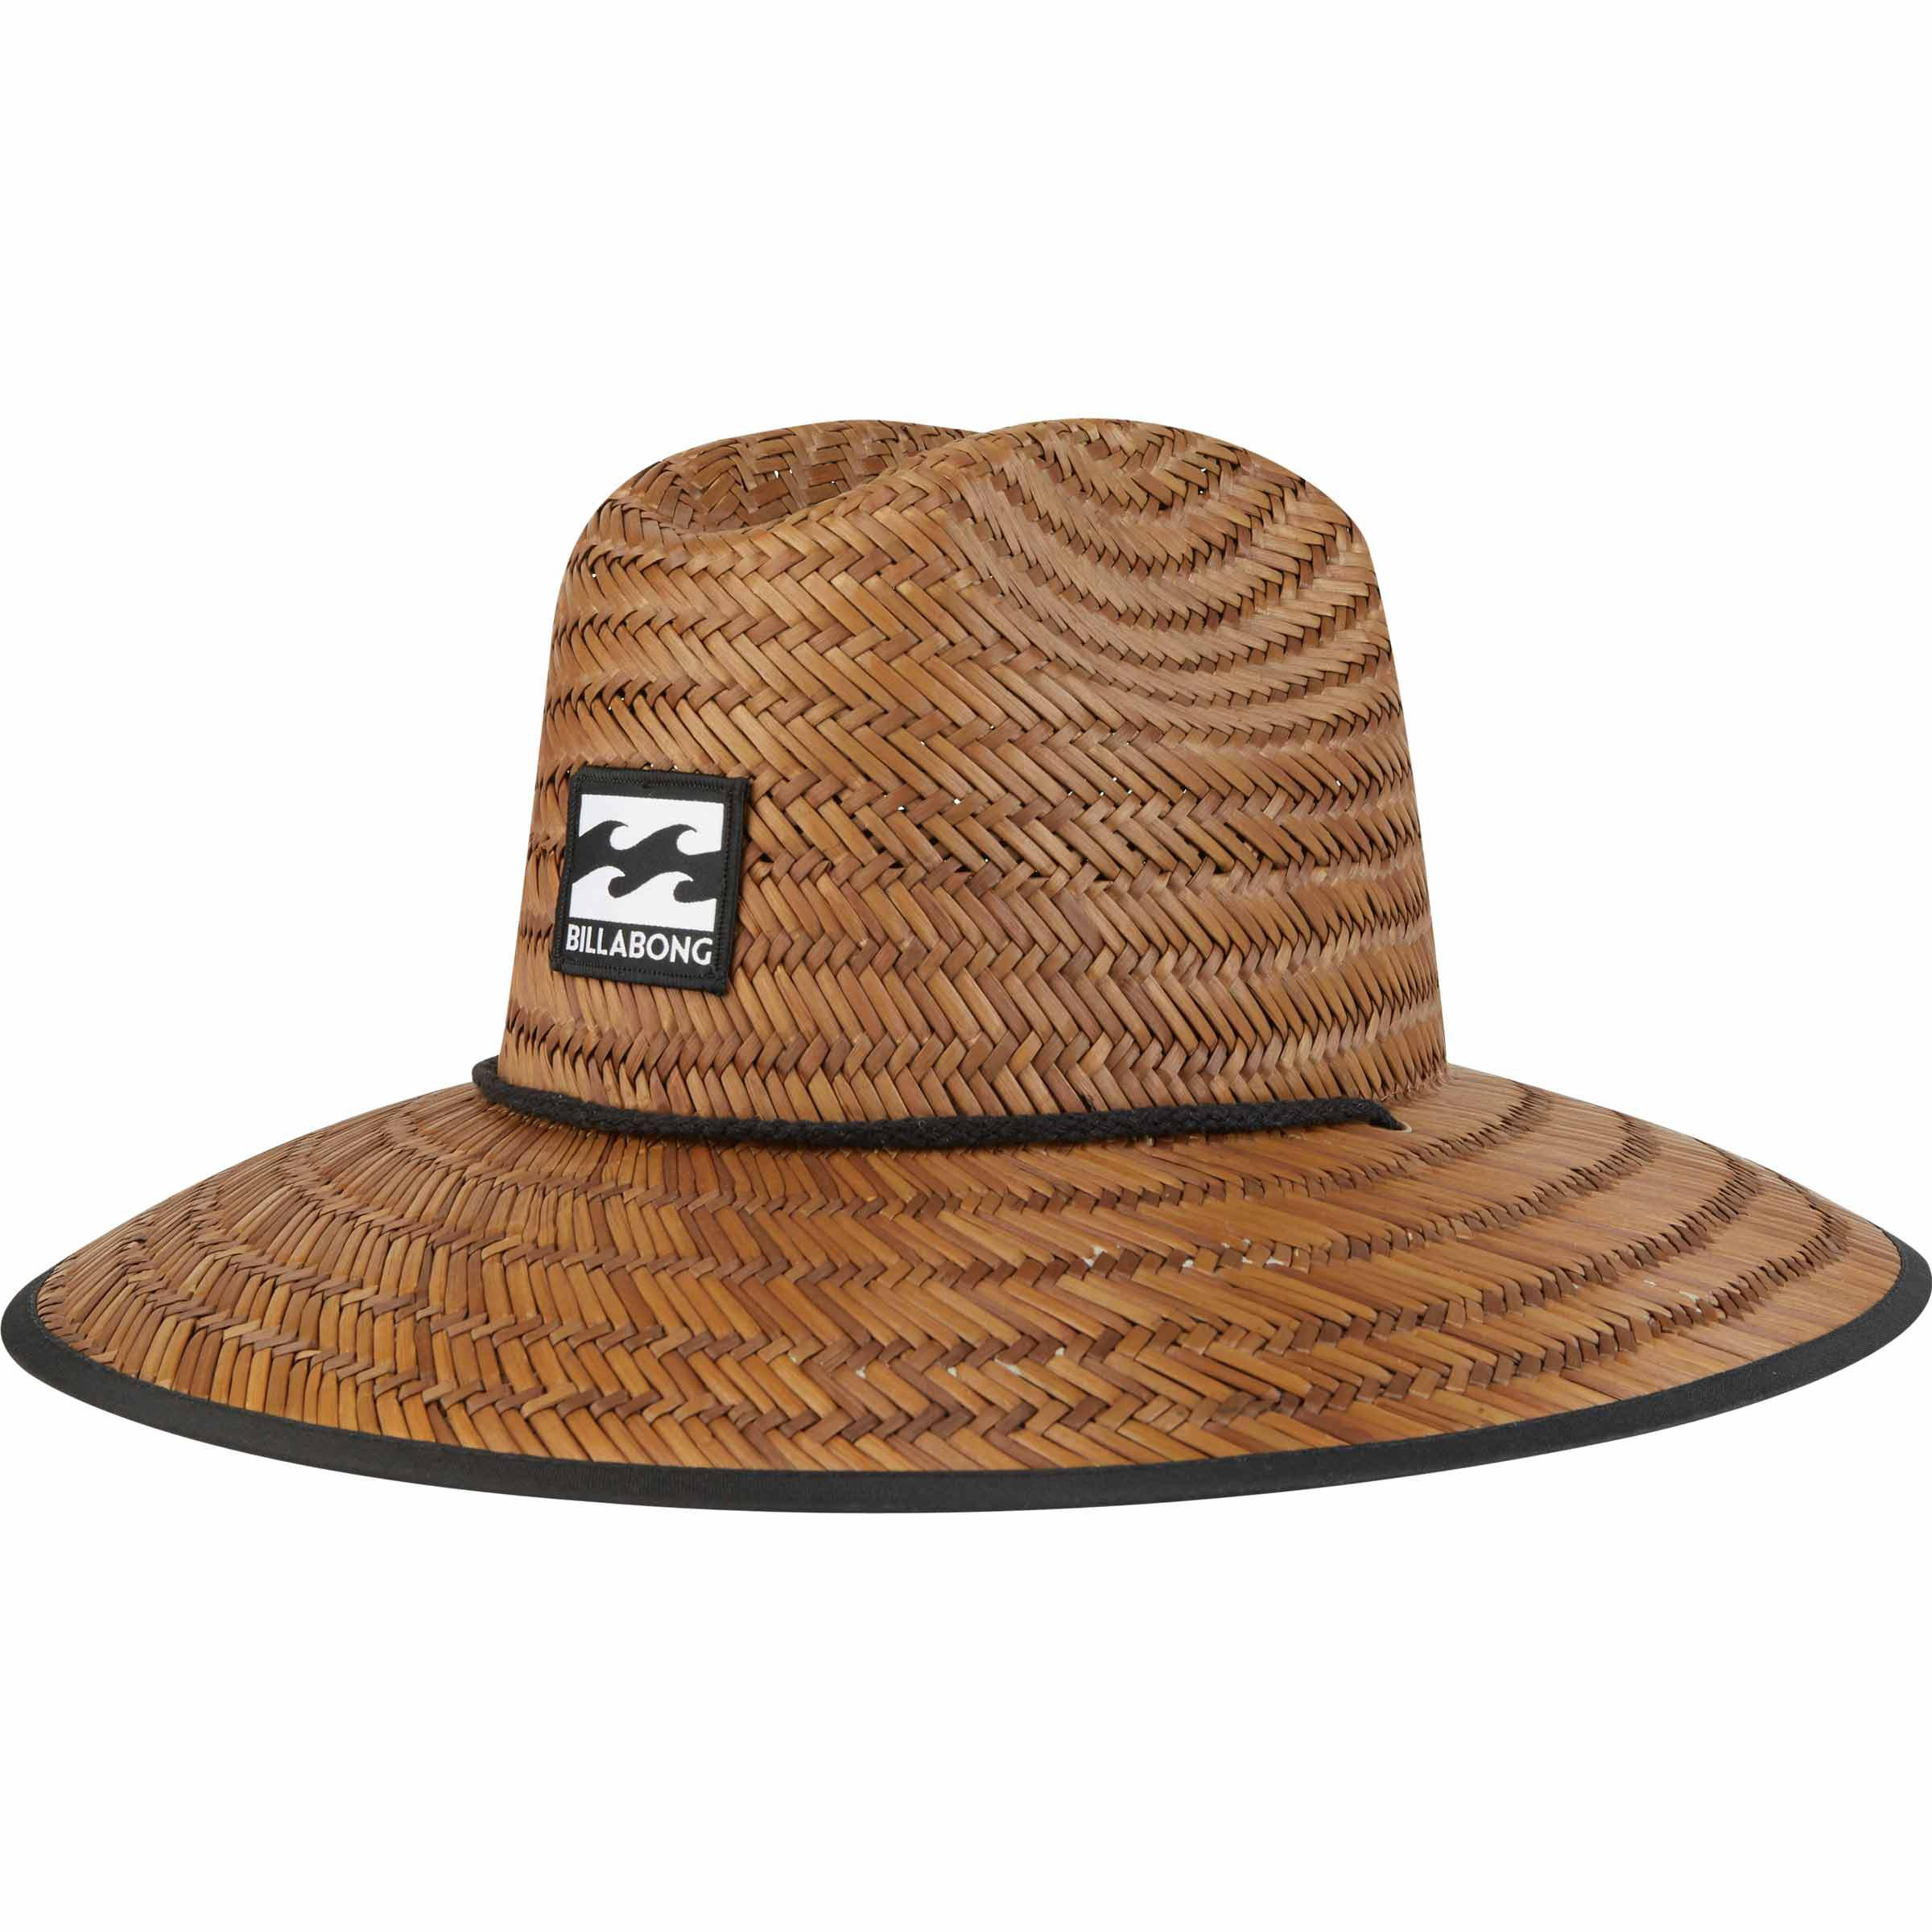 ... clearance gallery. previously sold at billabong mens wide brim hats  e757c 6cf0b fe5803a79ac